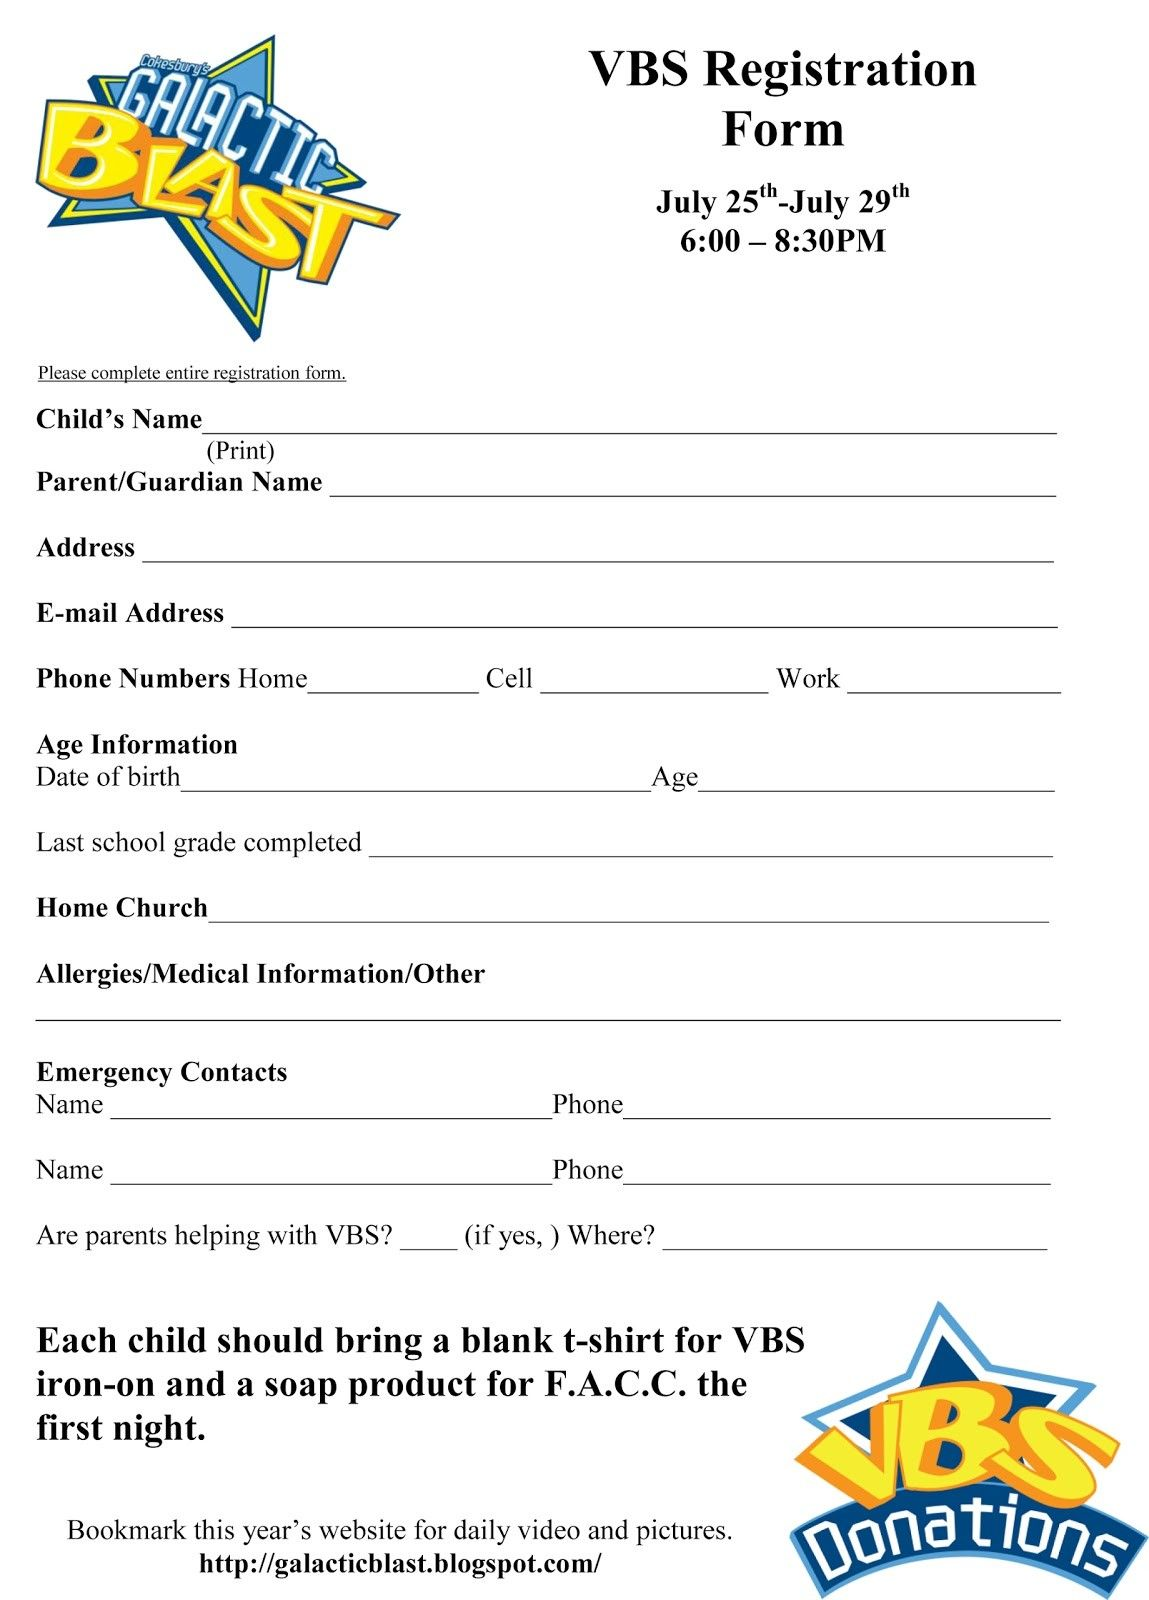 Vbs Lesson Plan Template Learn All About Vbs Lesson Plan Template From This Politician Lesson Plan Templates Registration Form Online Registration Form